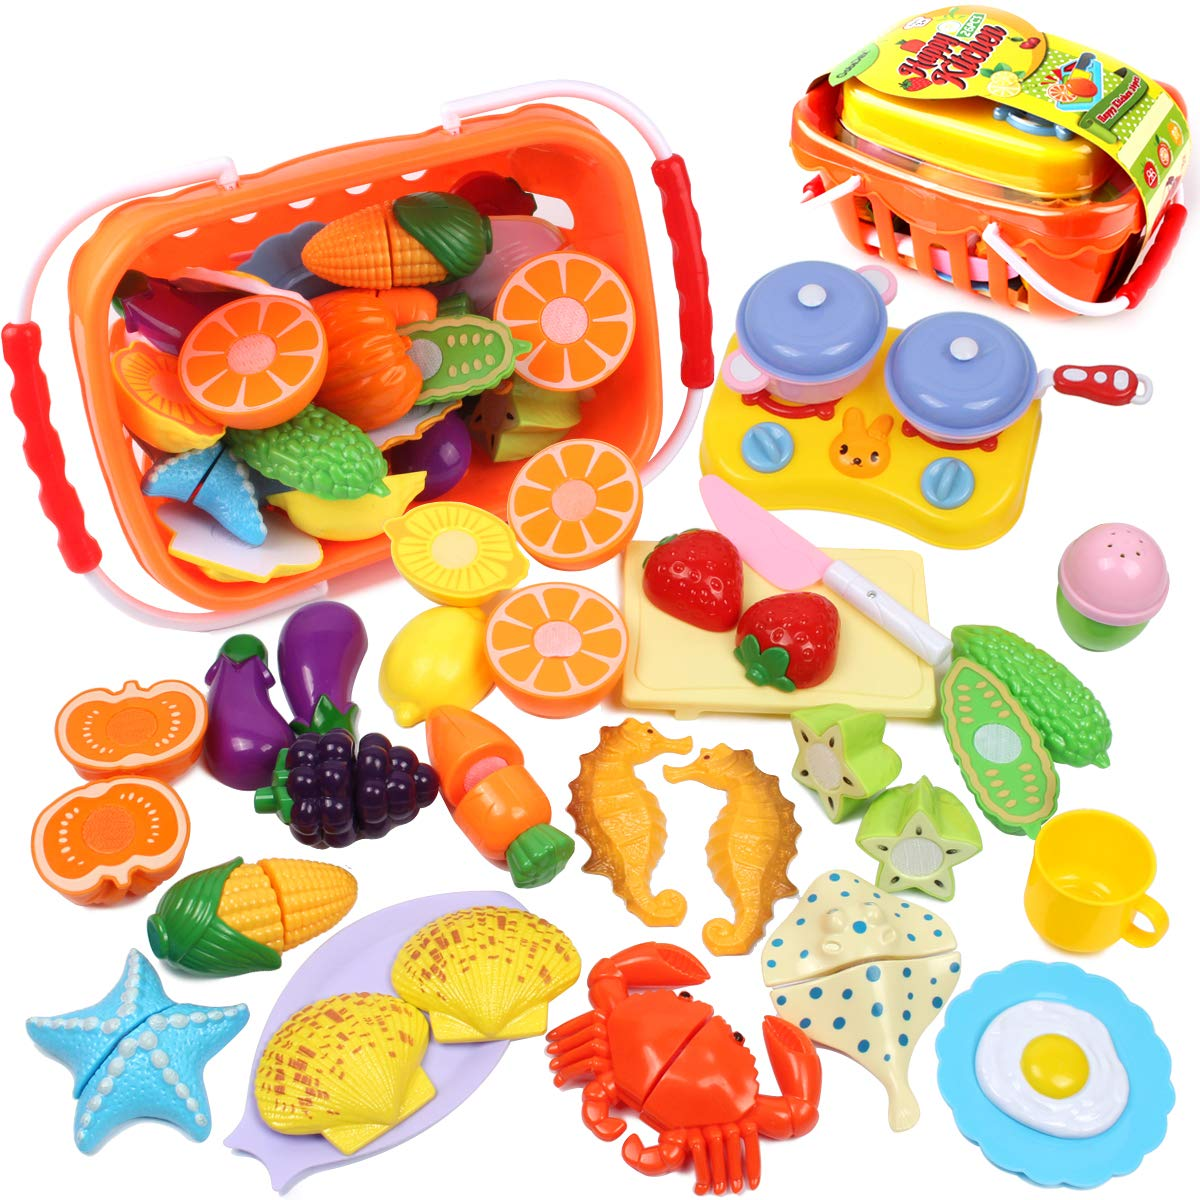 22 Pcs Food Sliceable Fruit Vegetable Cutting Kids Pretend Play Educational Kitchen Cooking House Toy Safe Learning Resources Electric Vehicle Parts